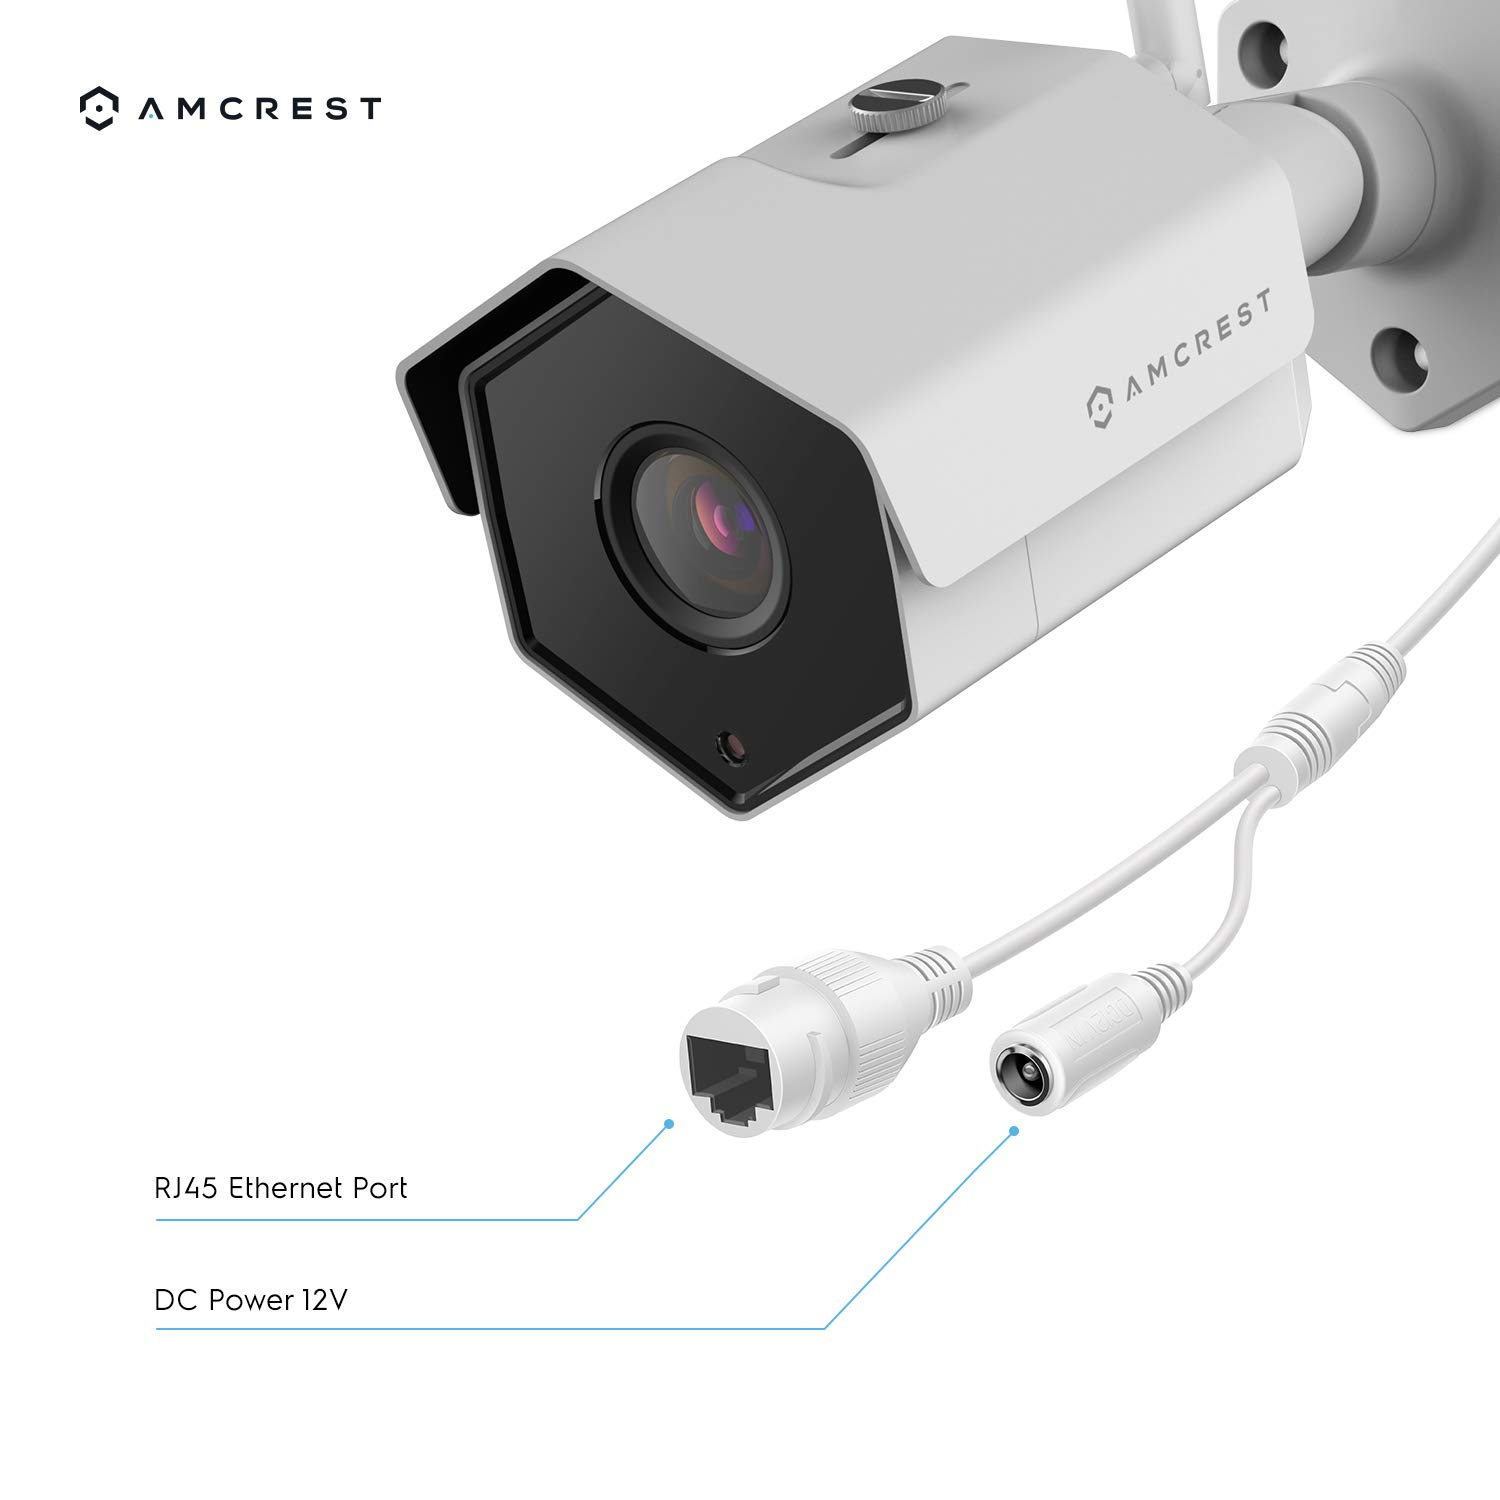 118/° Viewing Angle 98ft Night Vision Amcrest 4MP WiFi Wireless Outdoor Camera 2688 x 1520p Bullet Security IP Outdoor WiFi Camera IP67 Waterproof White IP4M-1026W MicroSD Recording